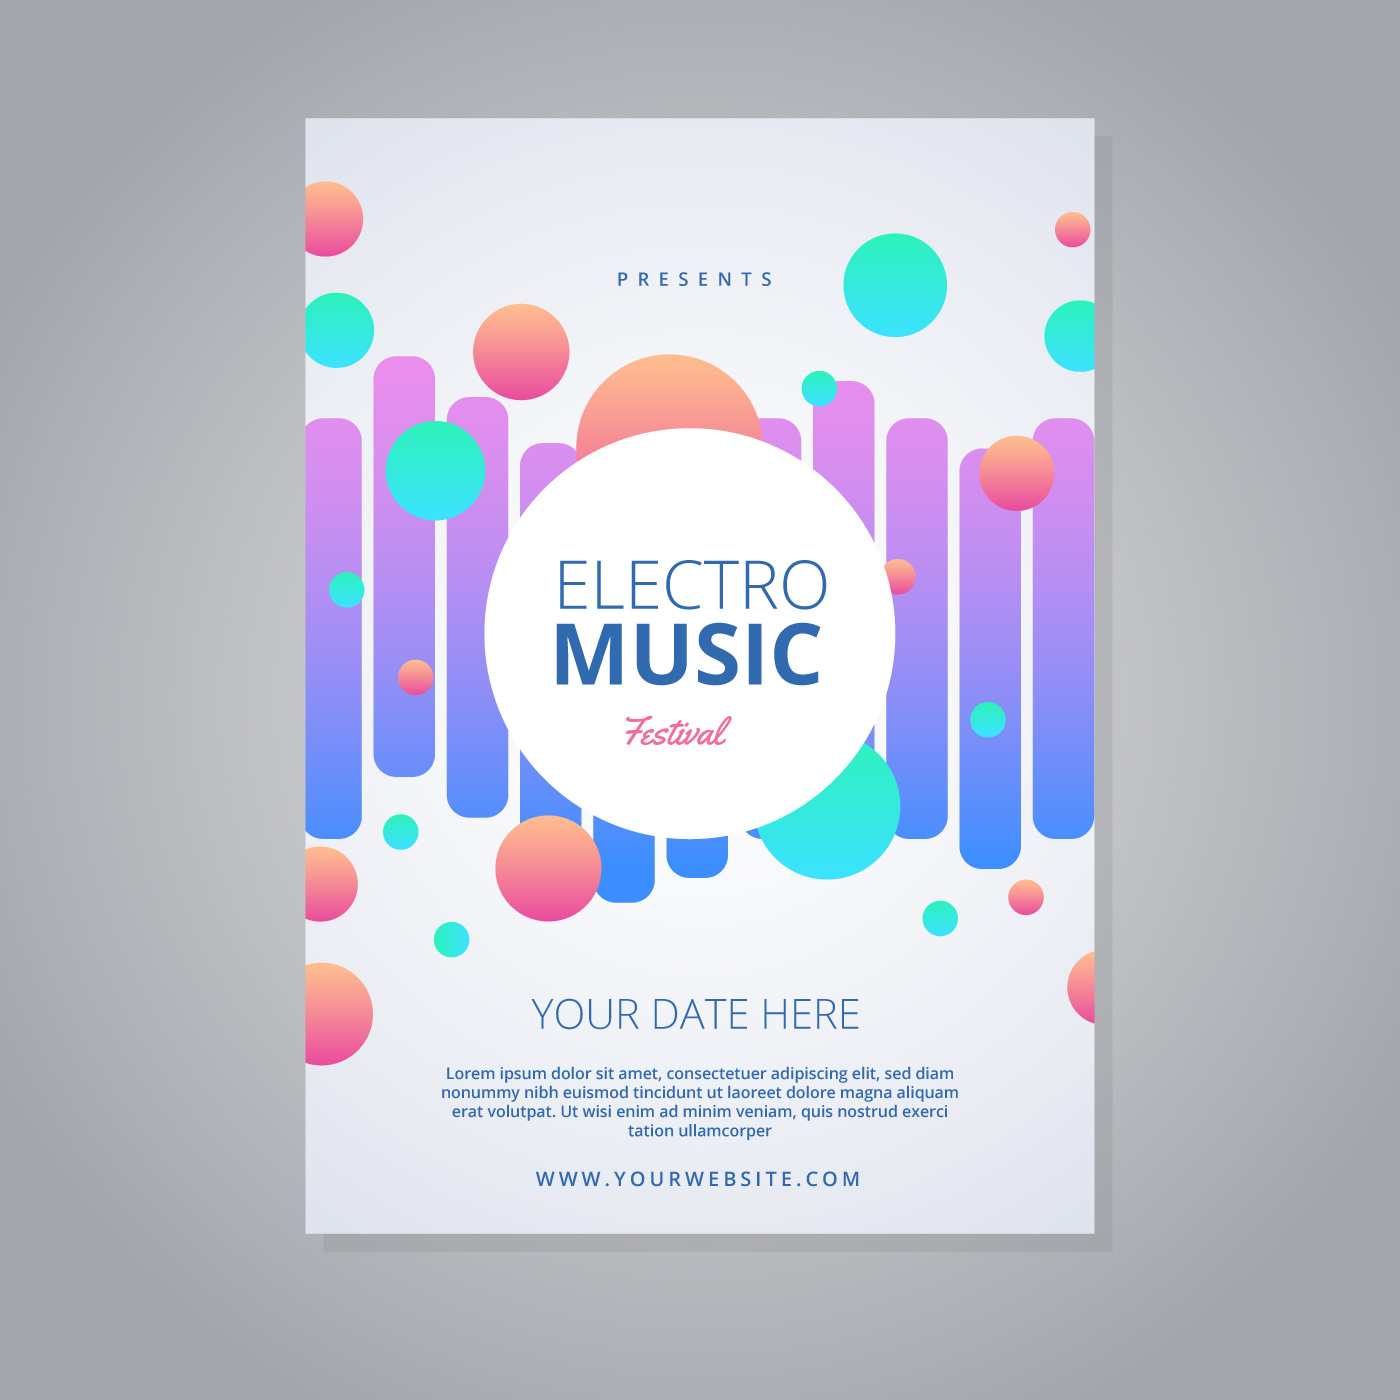 Electro Music Festival Flyer - Download Free Vector Art, Stock ...